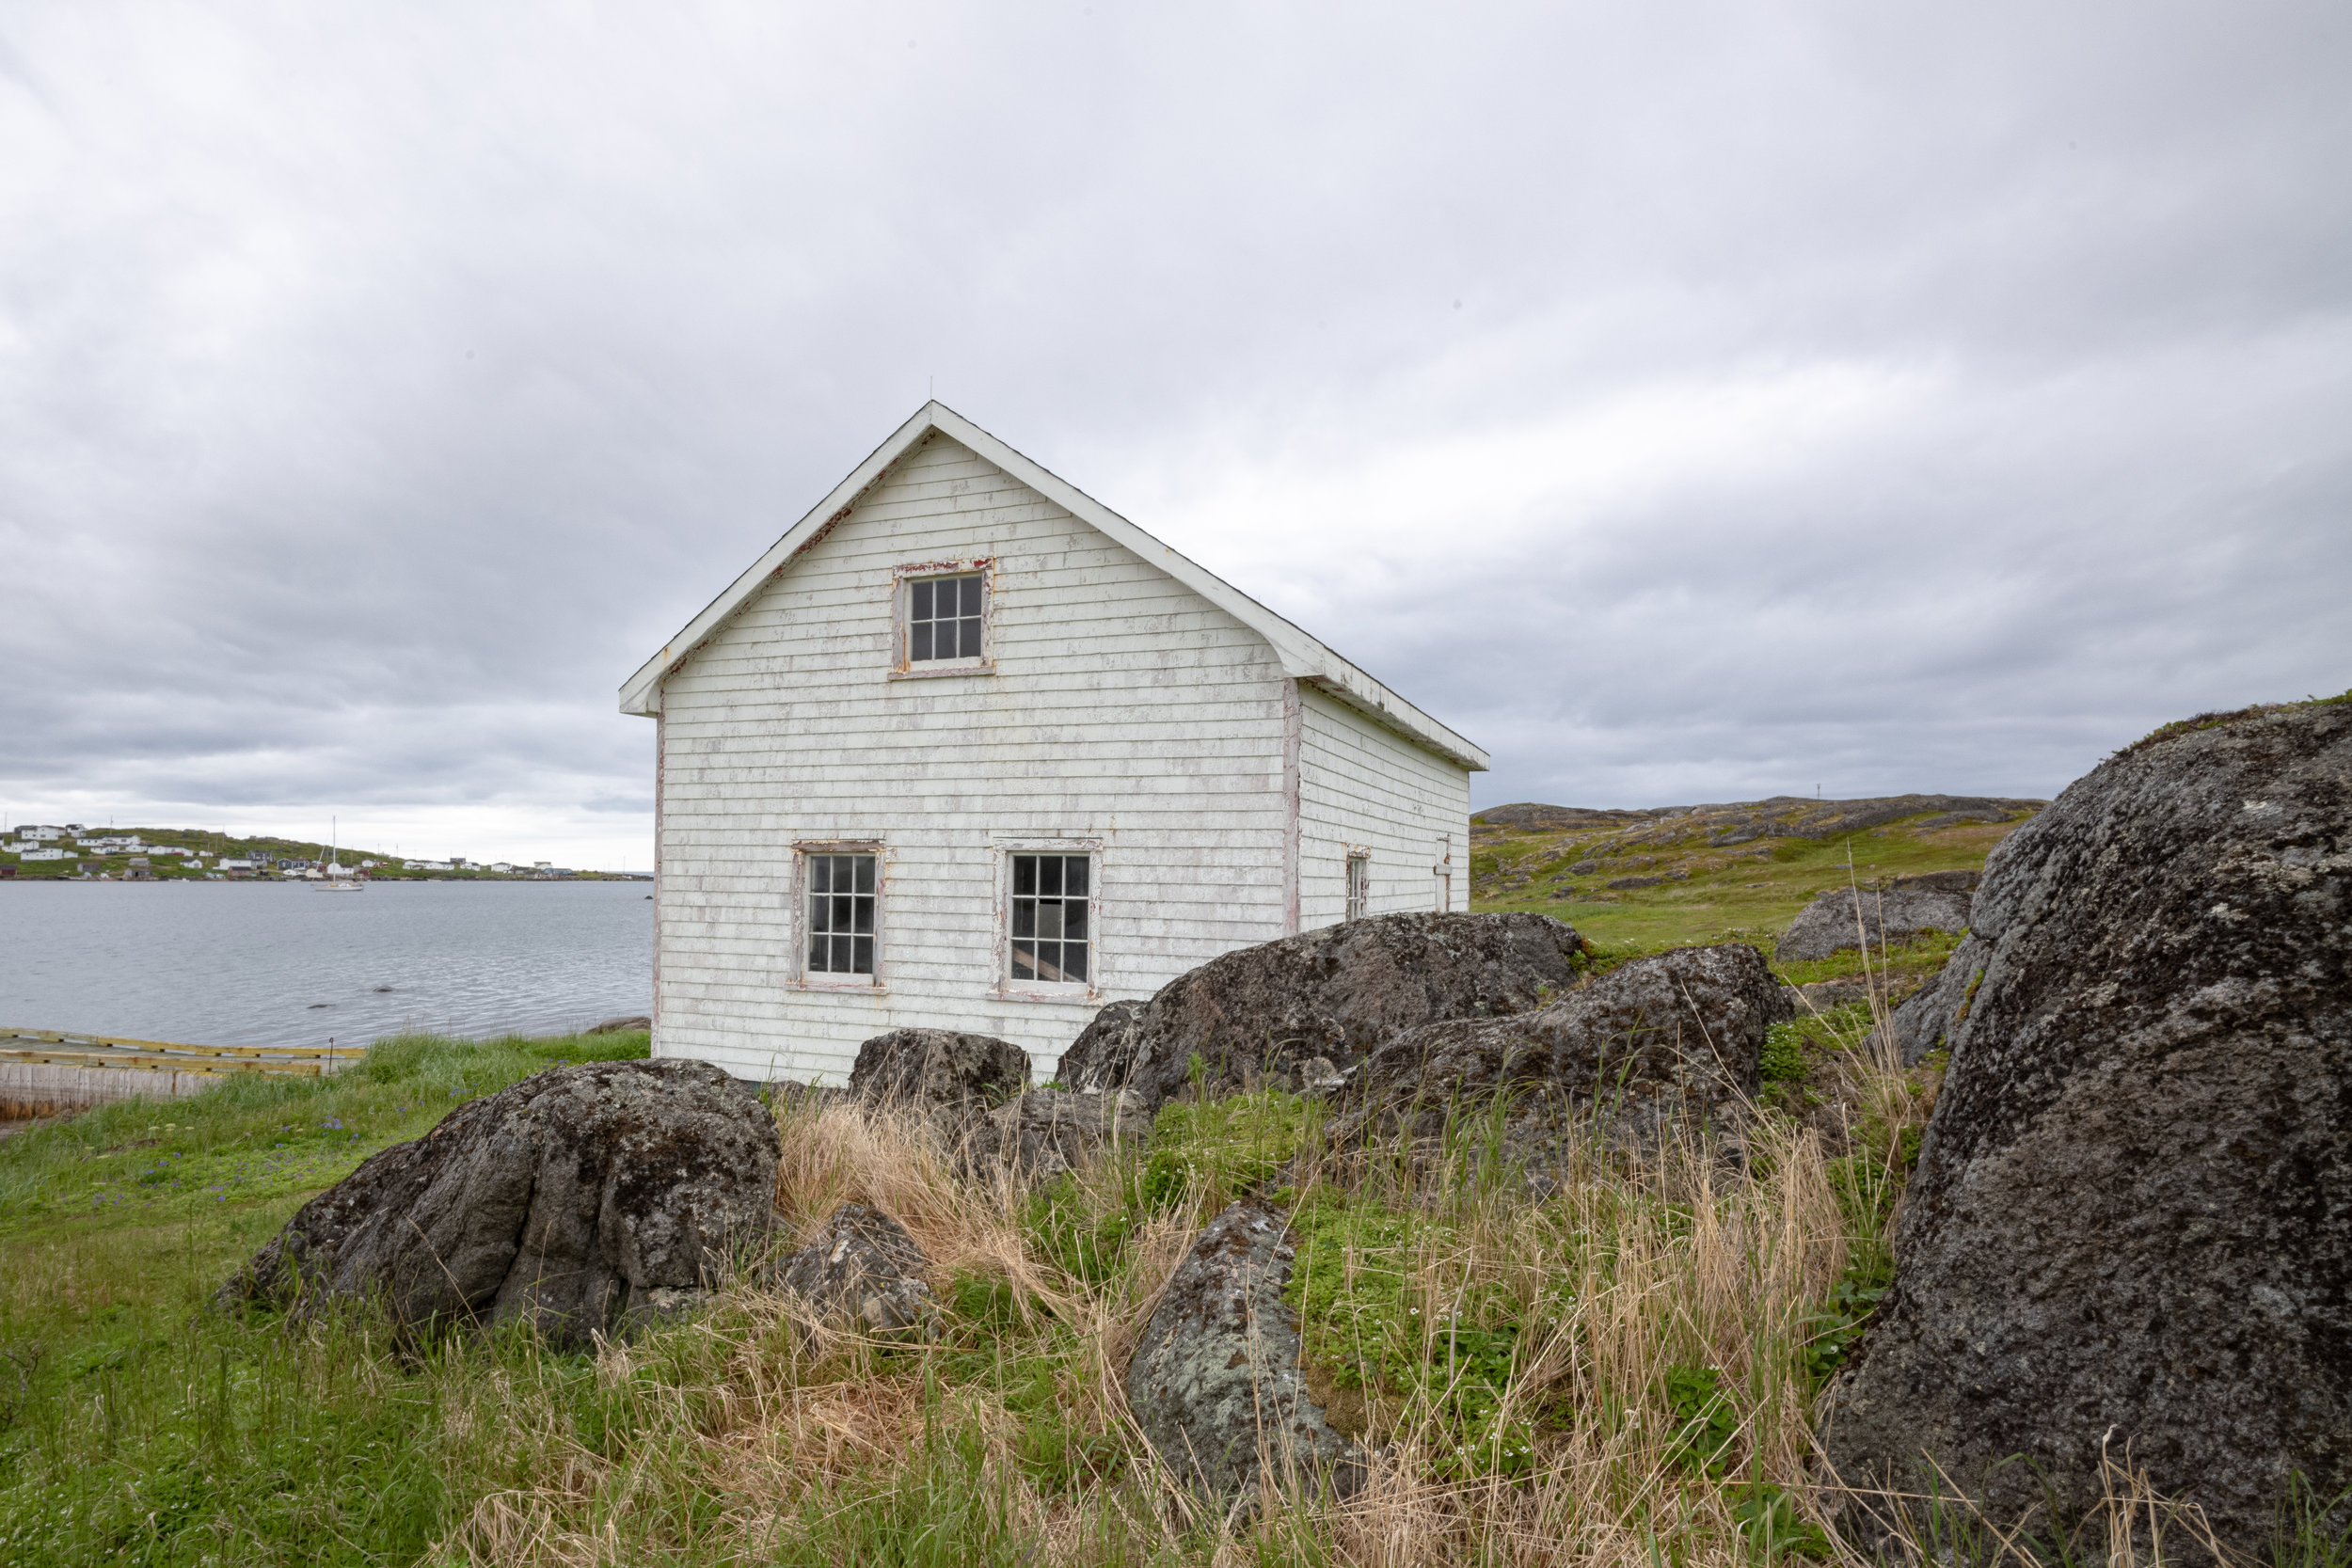 Remains of the whaling station at Red Bay, Labrador.